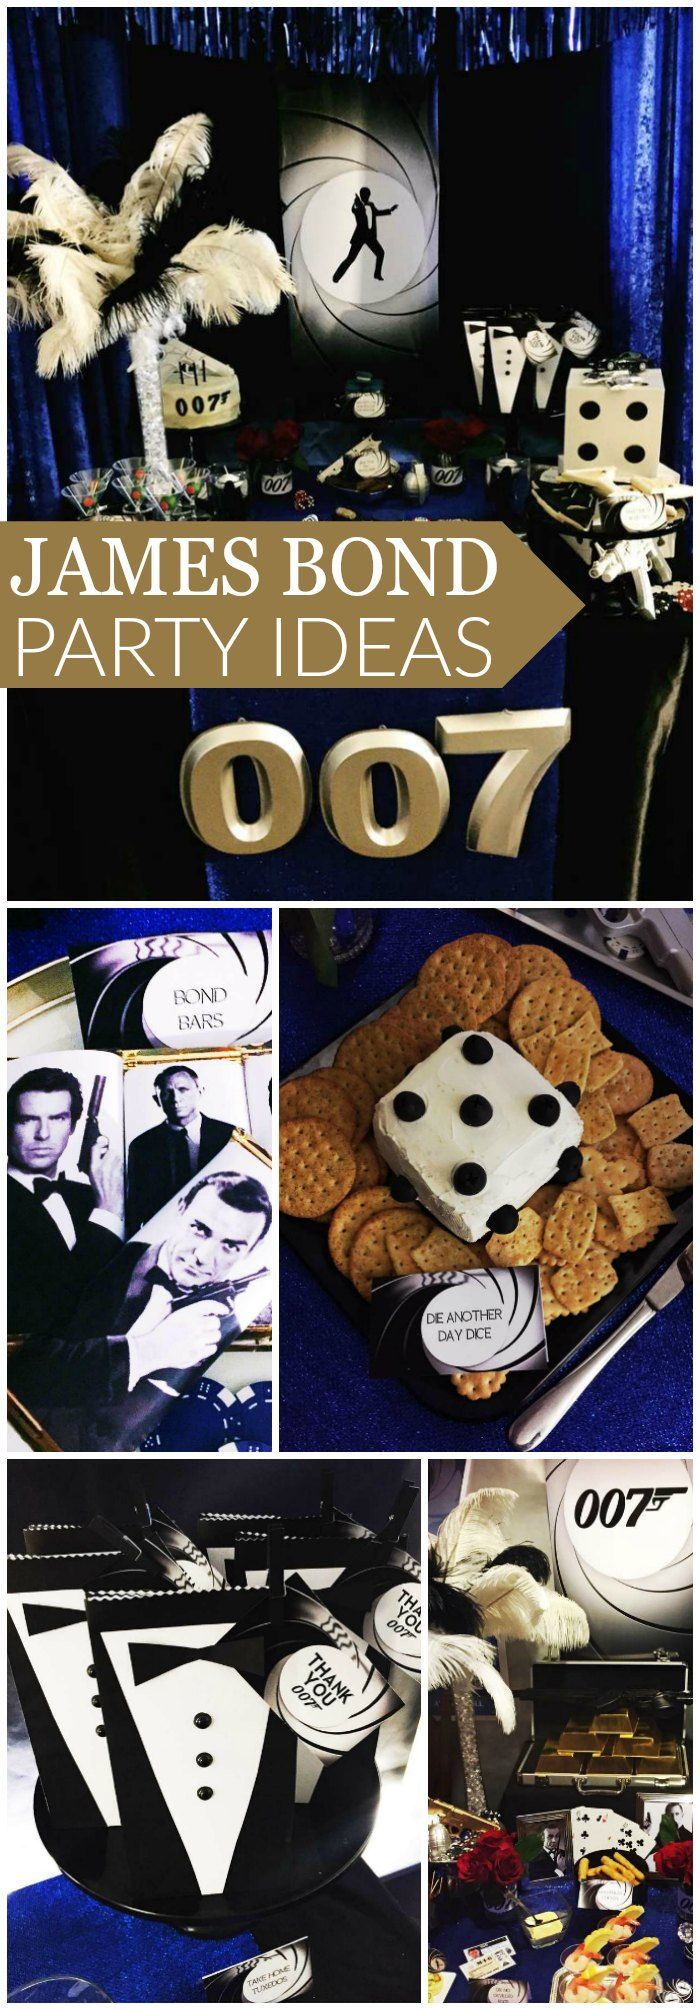 17 best images about james bond theme party ideas on pinterest casino royale 40th birthday. Black Bedroom Furniture Sets. Home Design Ideas